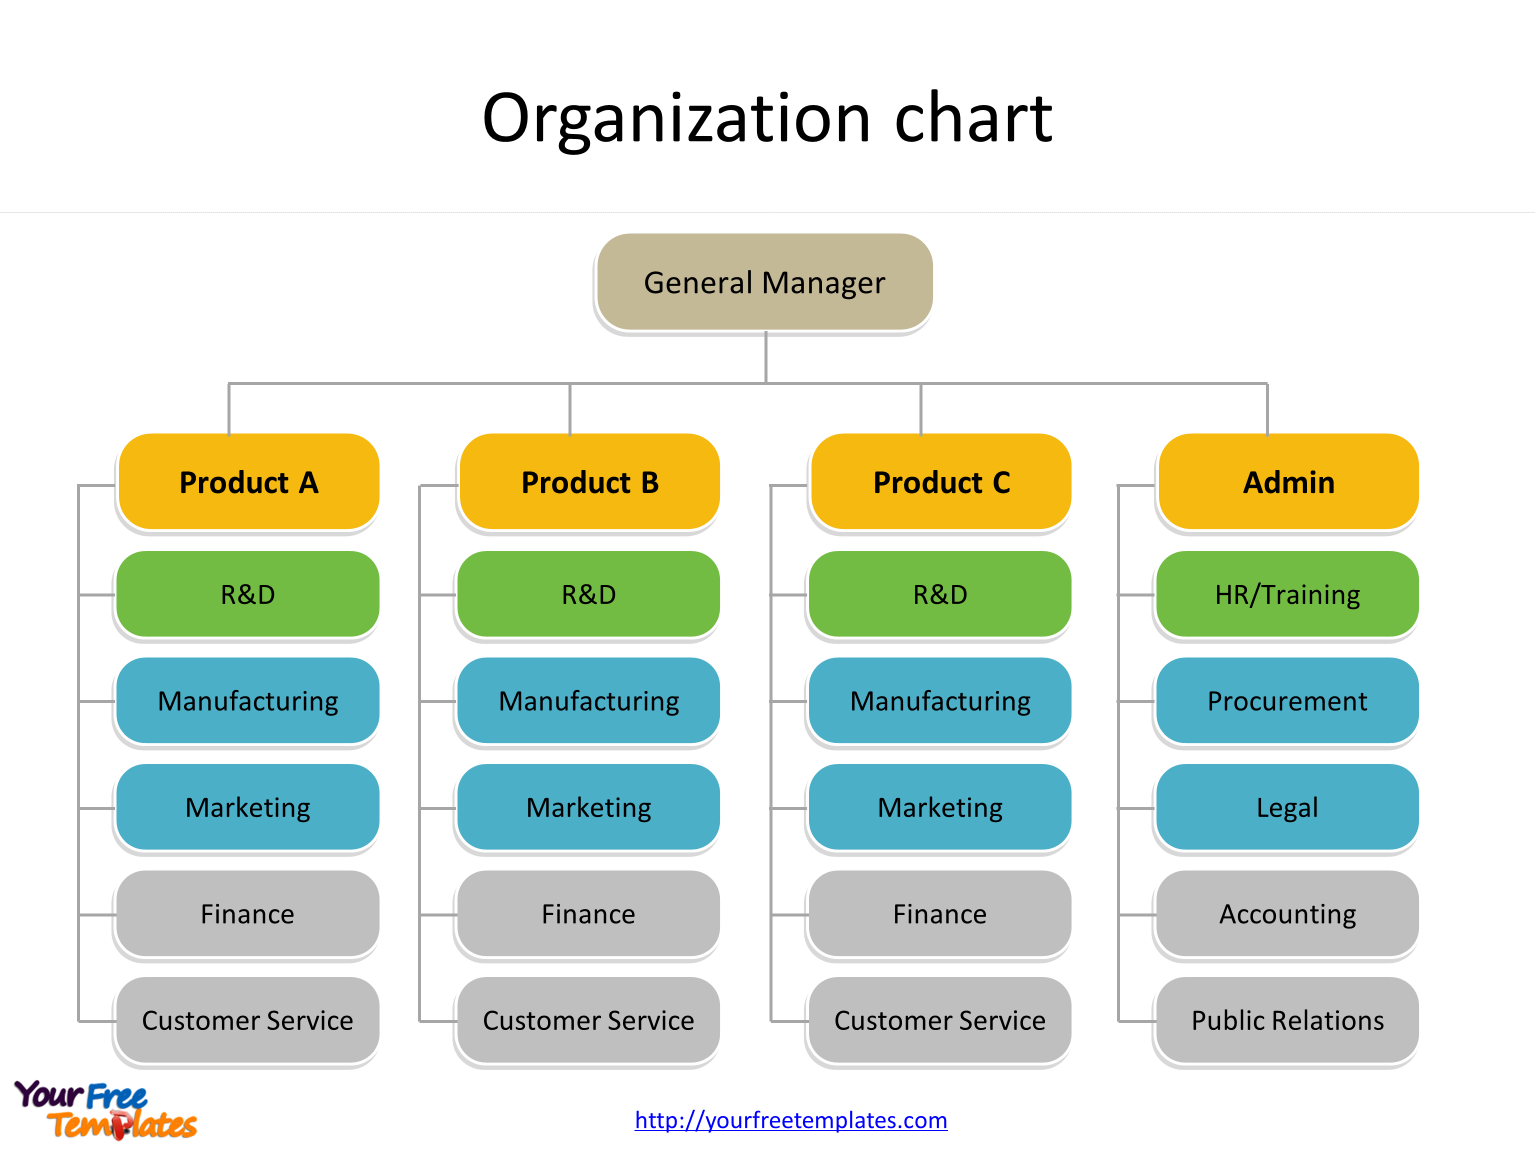 Organization chart template with hierarchy structure.